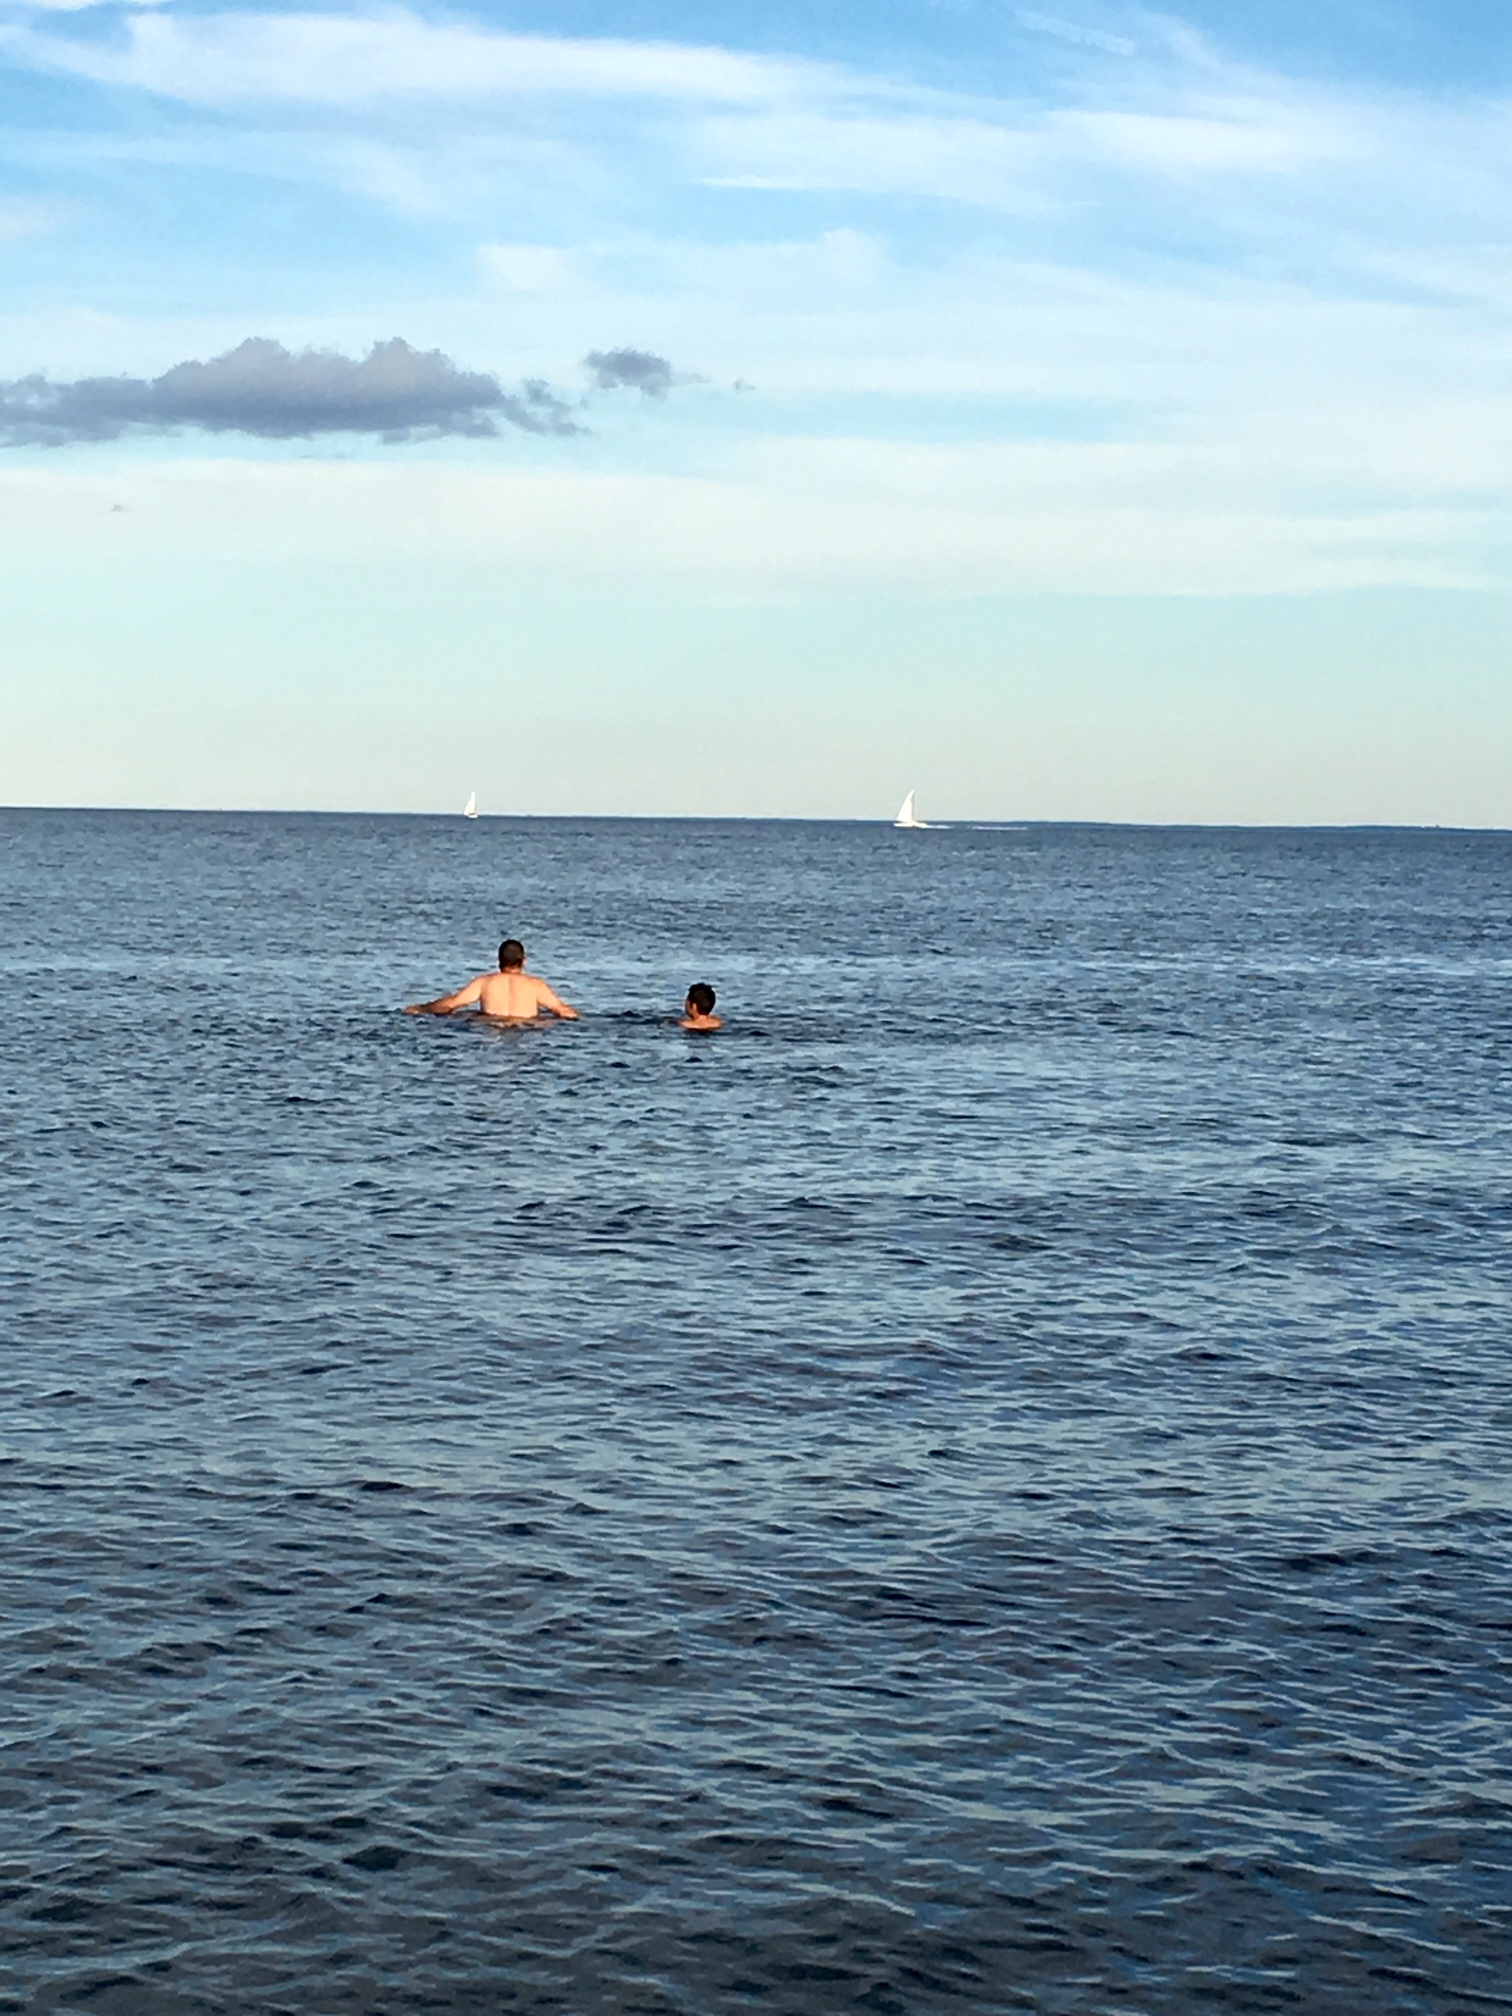 My brother and nephew swimming in the Long Island Sound off Jennings Beach.